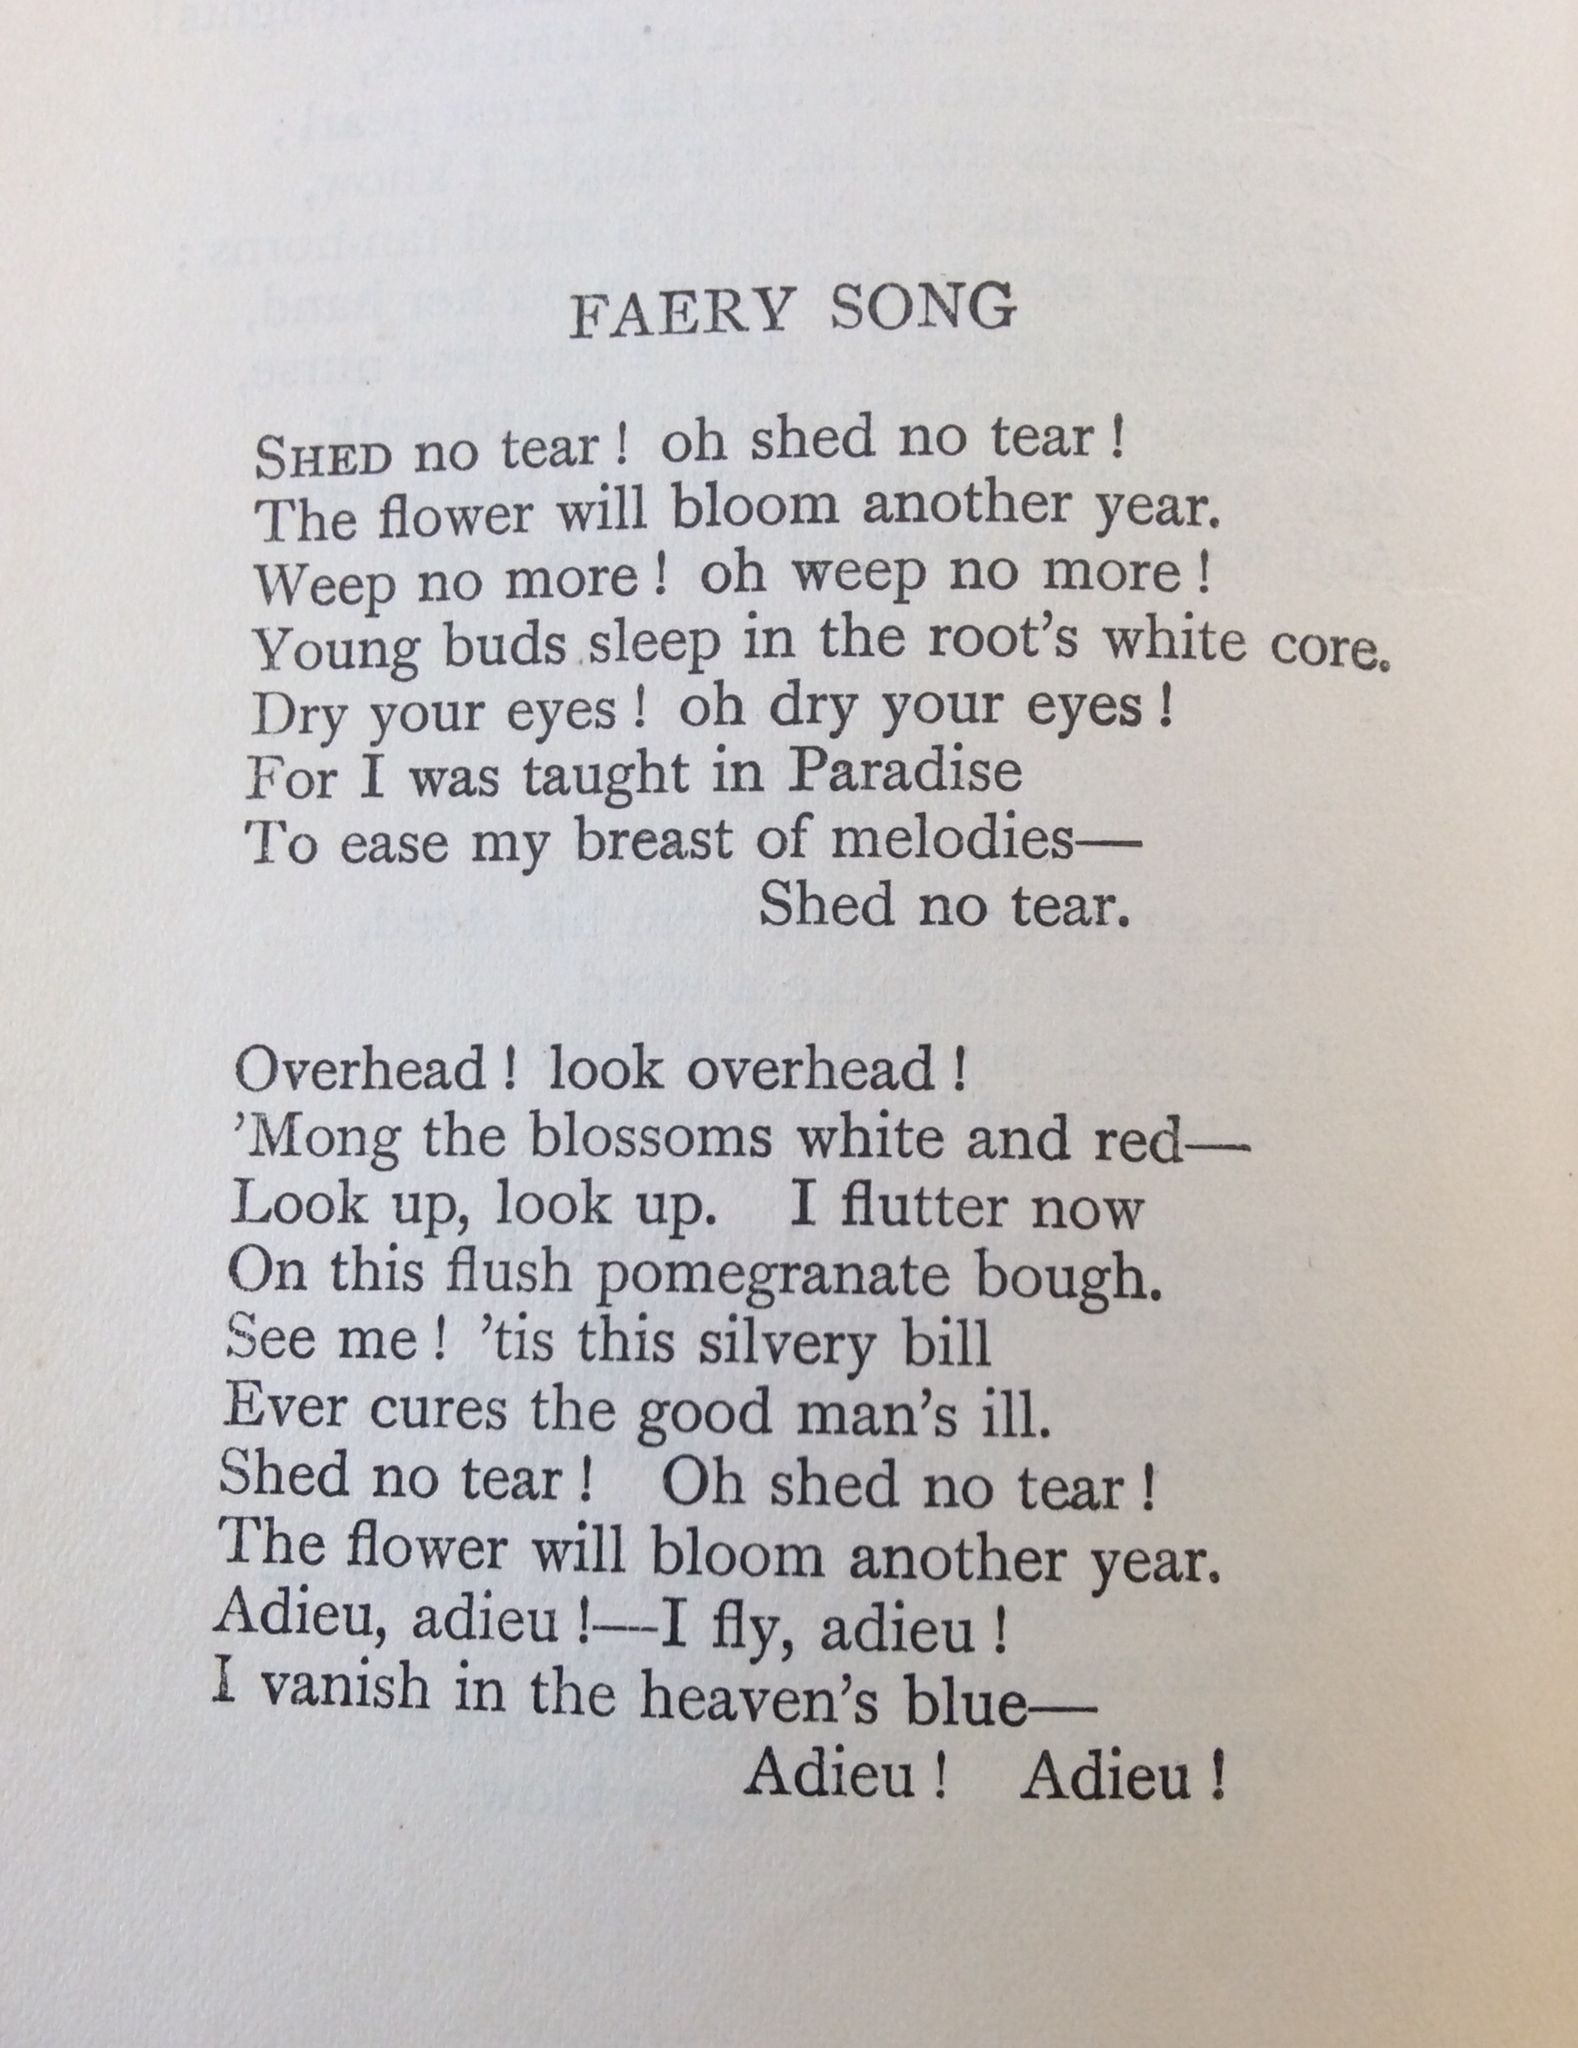 Faery Song John Keat Poetry Word Quote Line By Explanation Of The Poem Ode To Autumn Keats